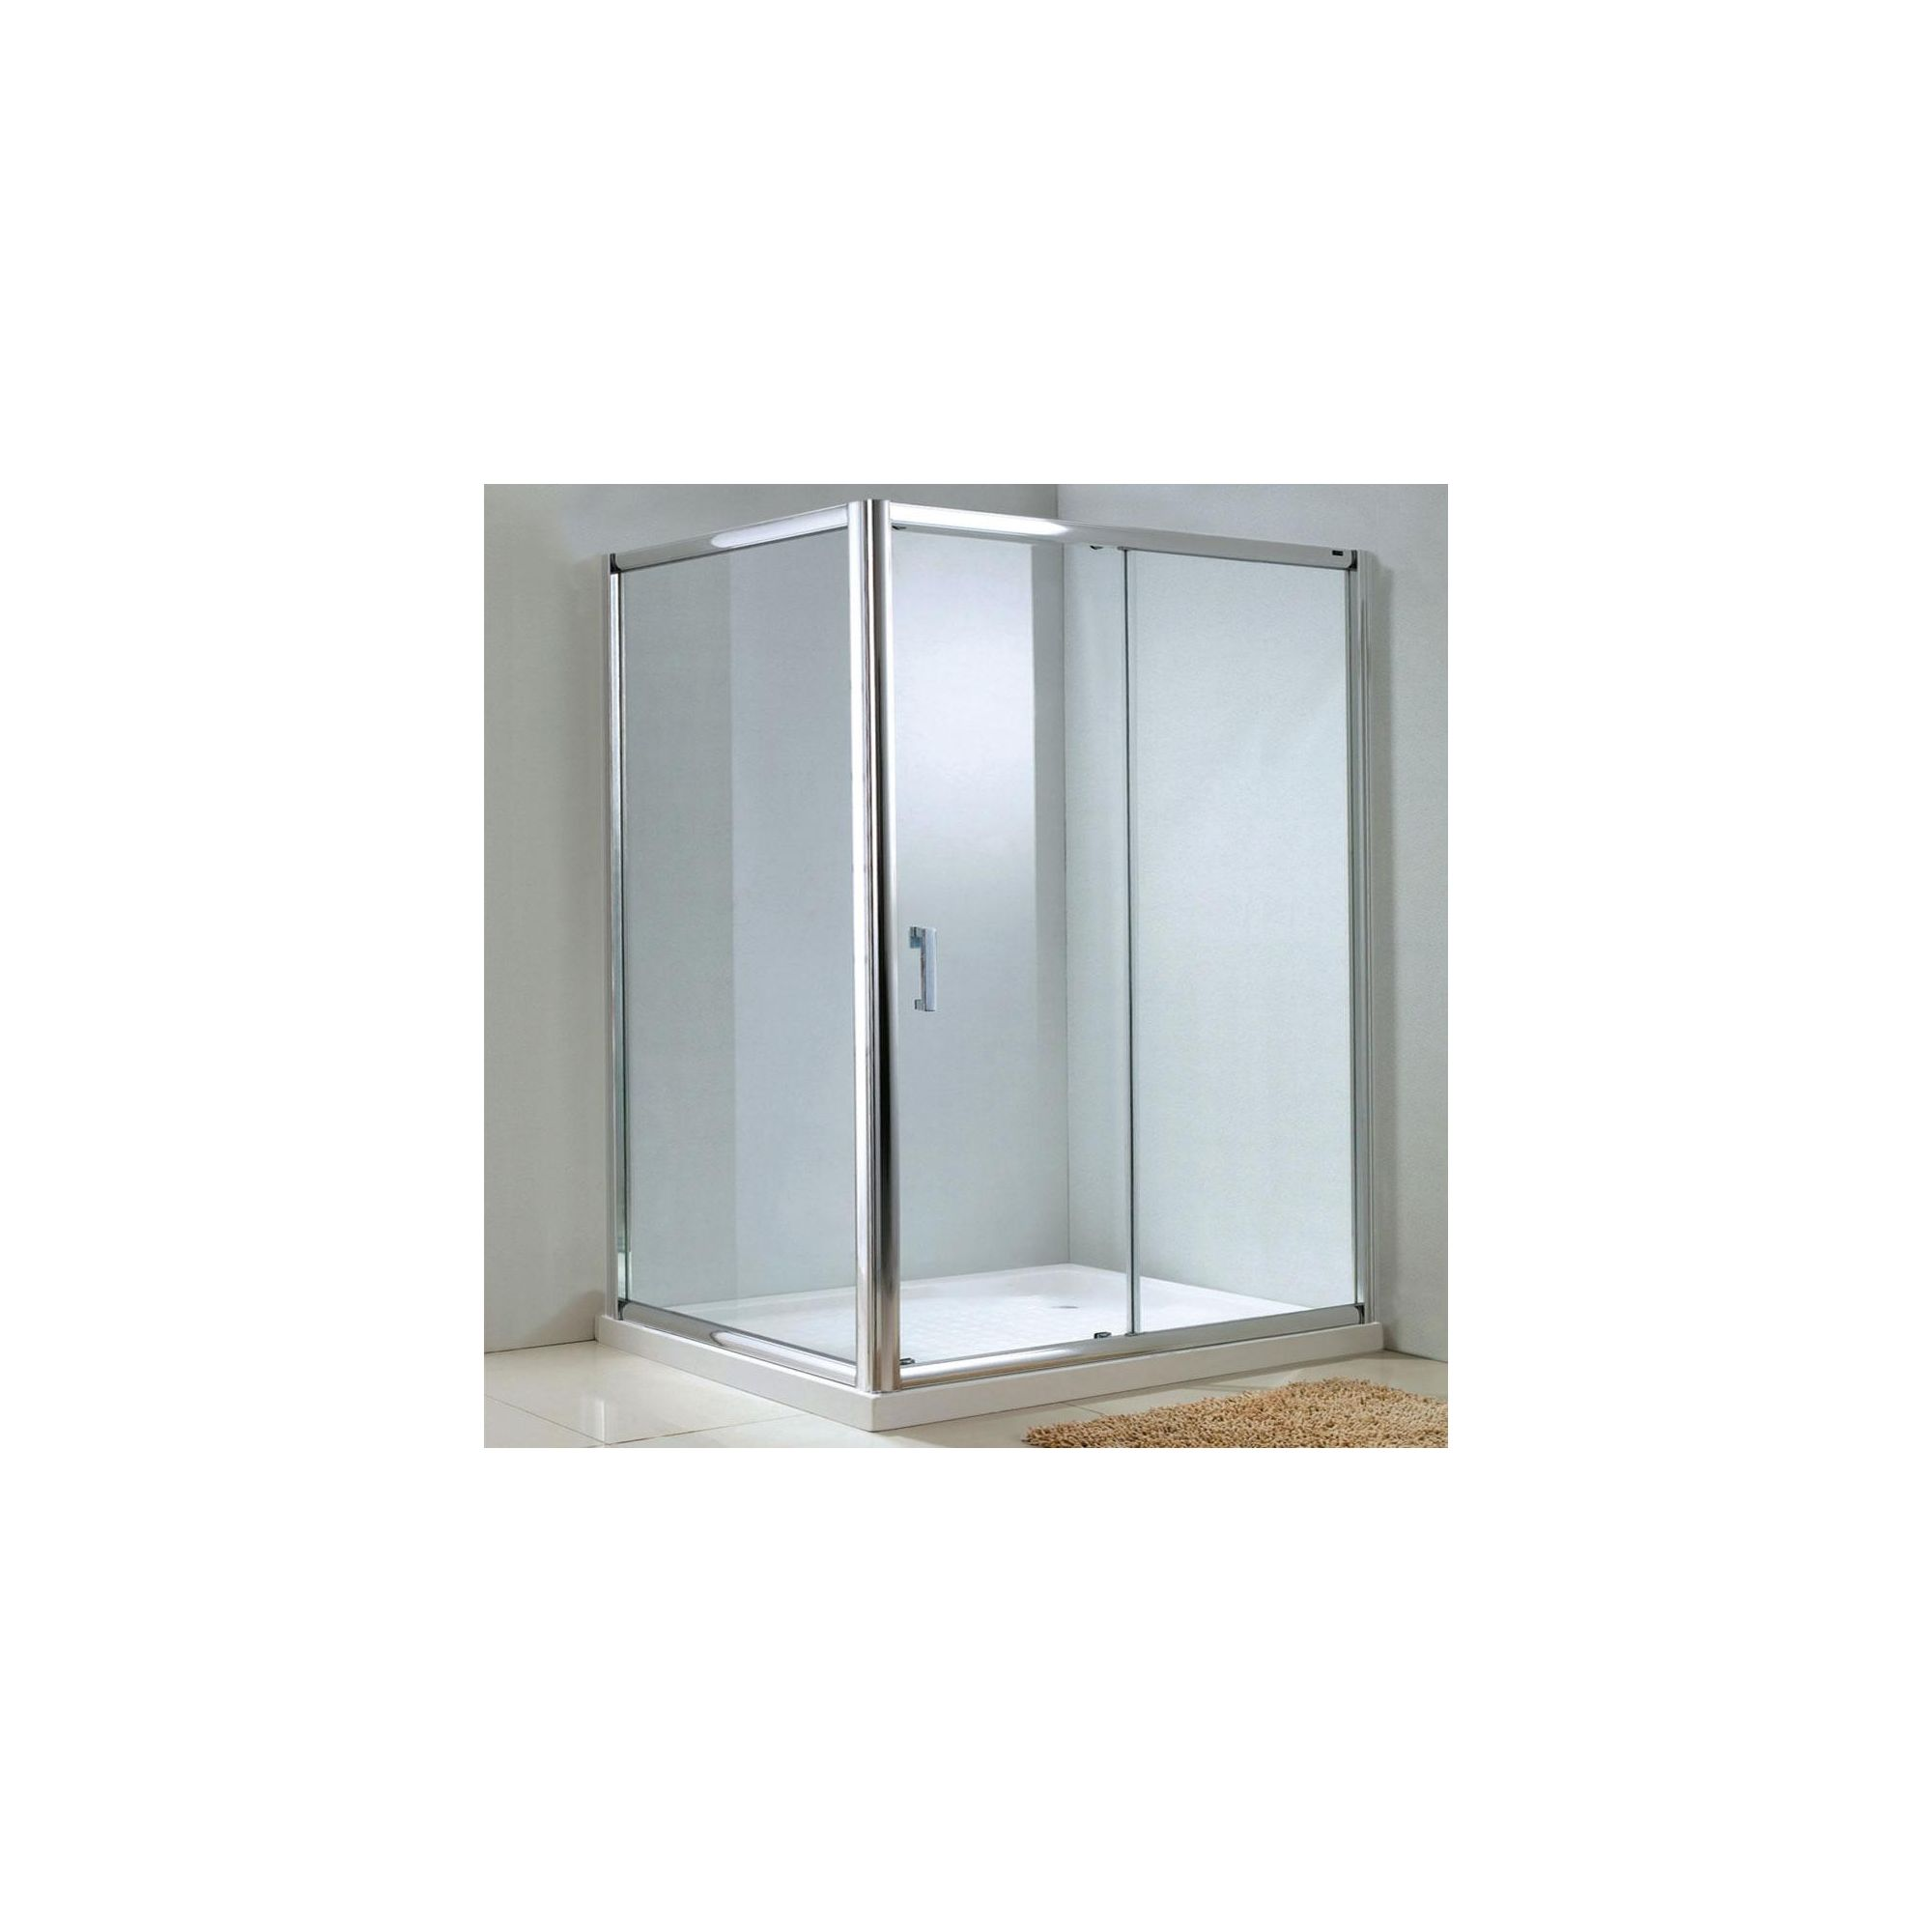 Duchy Style Single Sliding Door Shower Enclosure, 1000mm x 800mm, 6mm Glass, Low Profile Tray at Tesco Direct